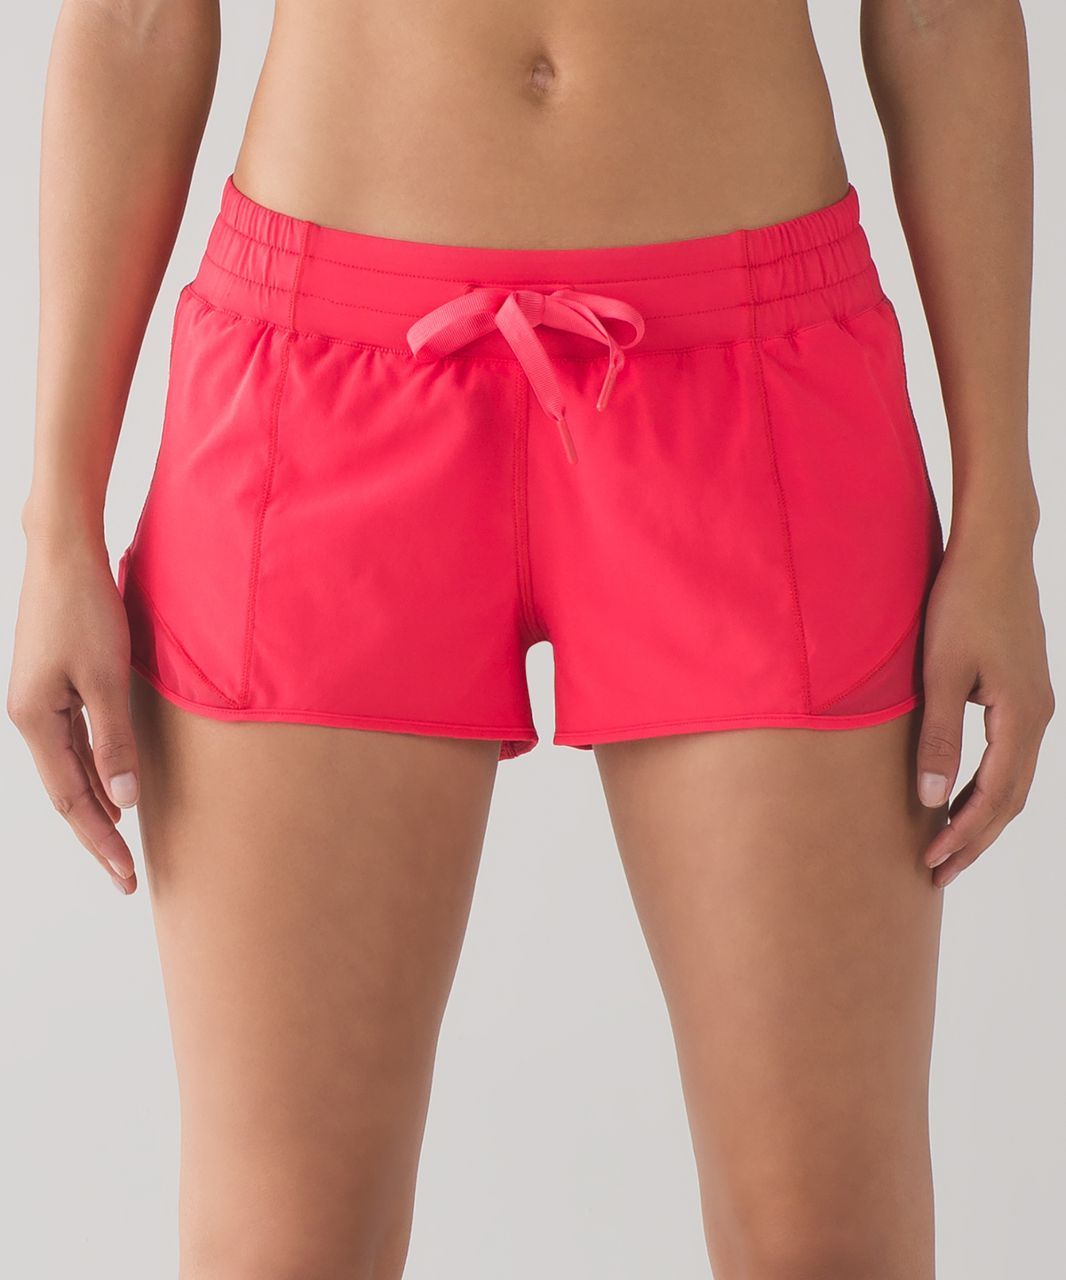 "Lululemon Hotty Hot Short (2 1/2"") - Lush Coral"